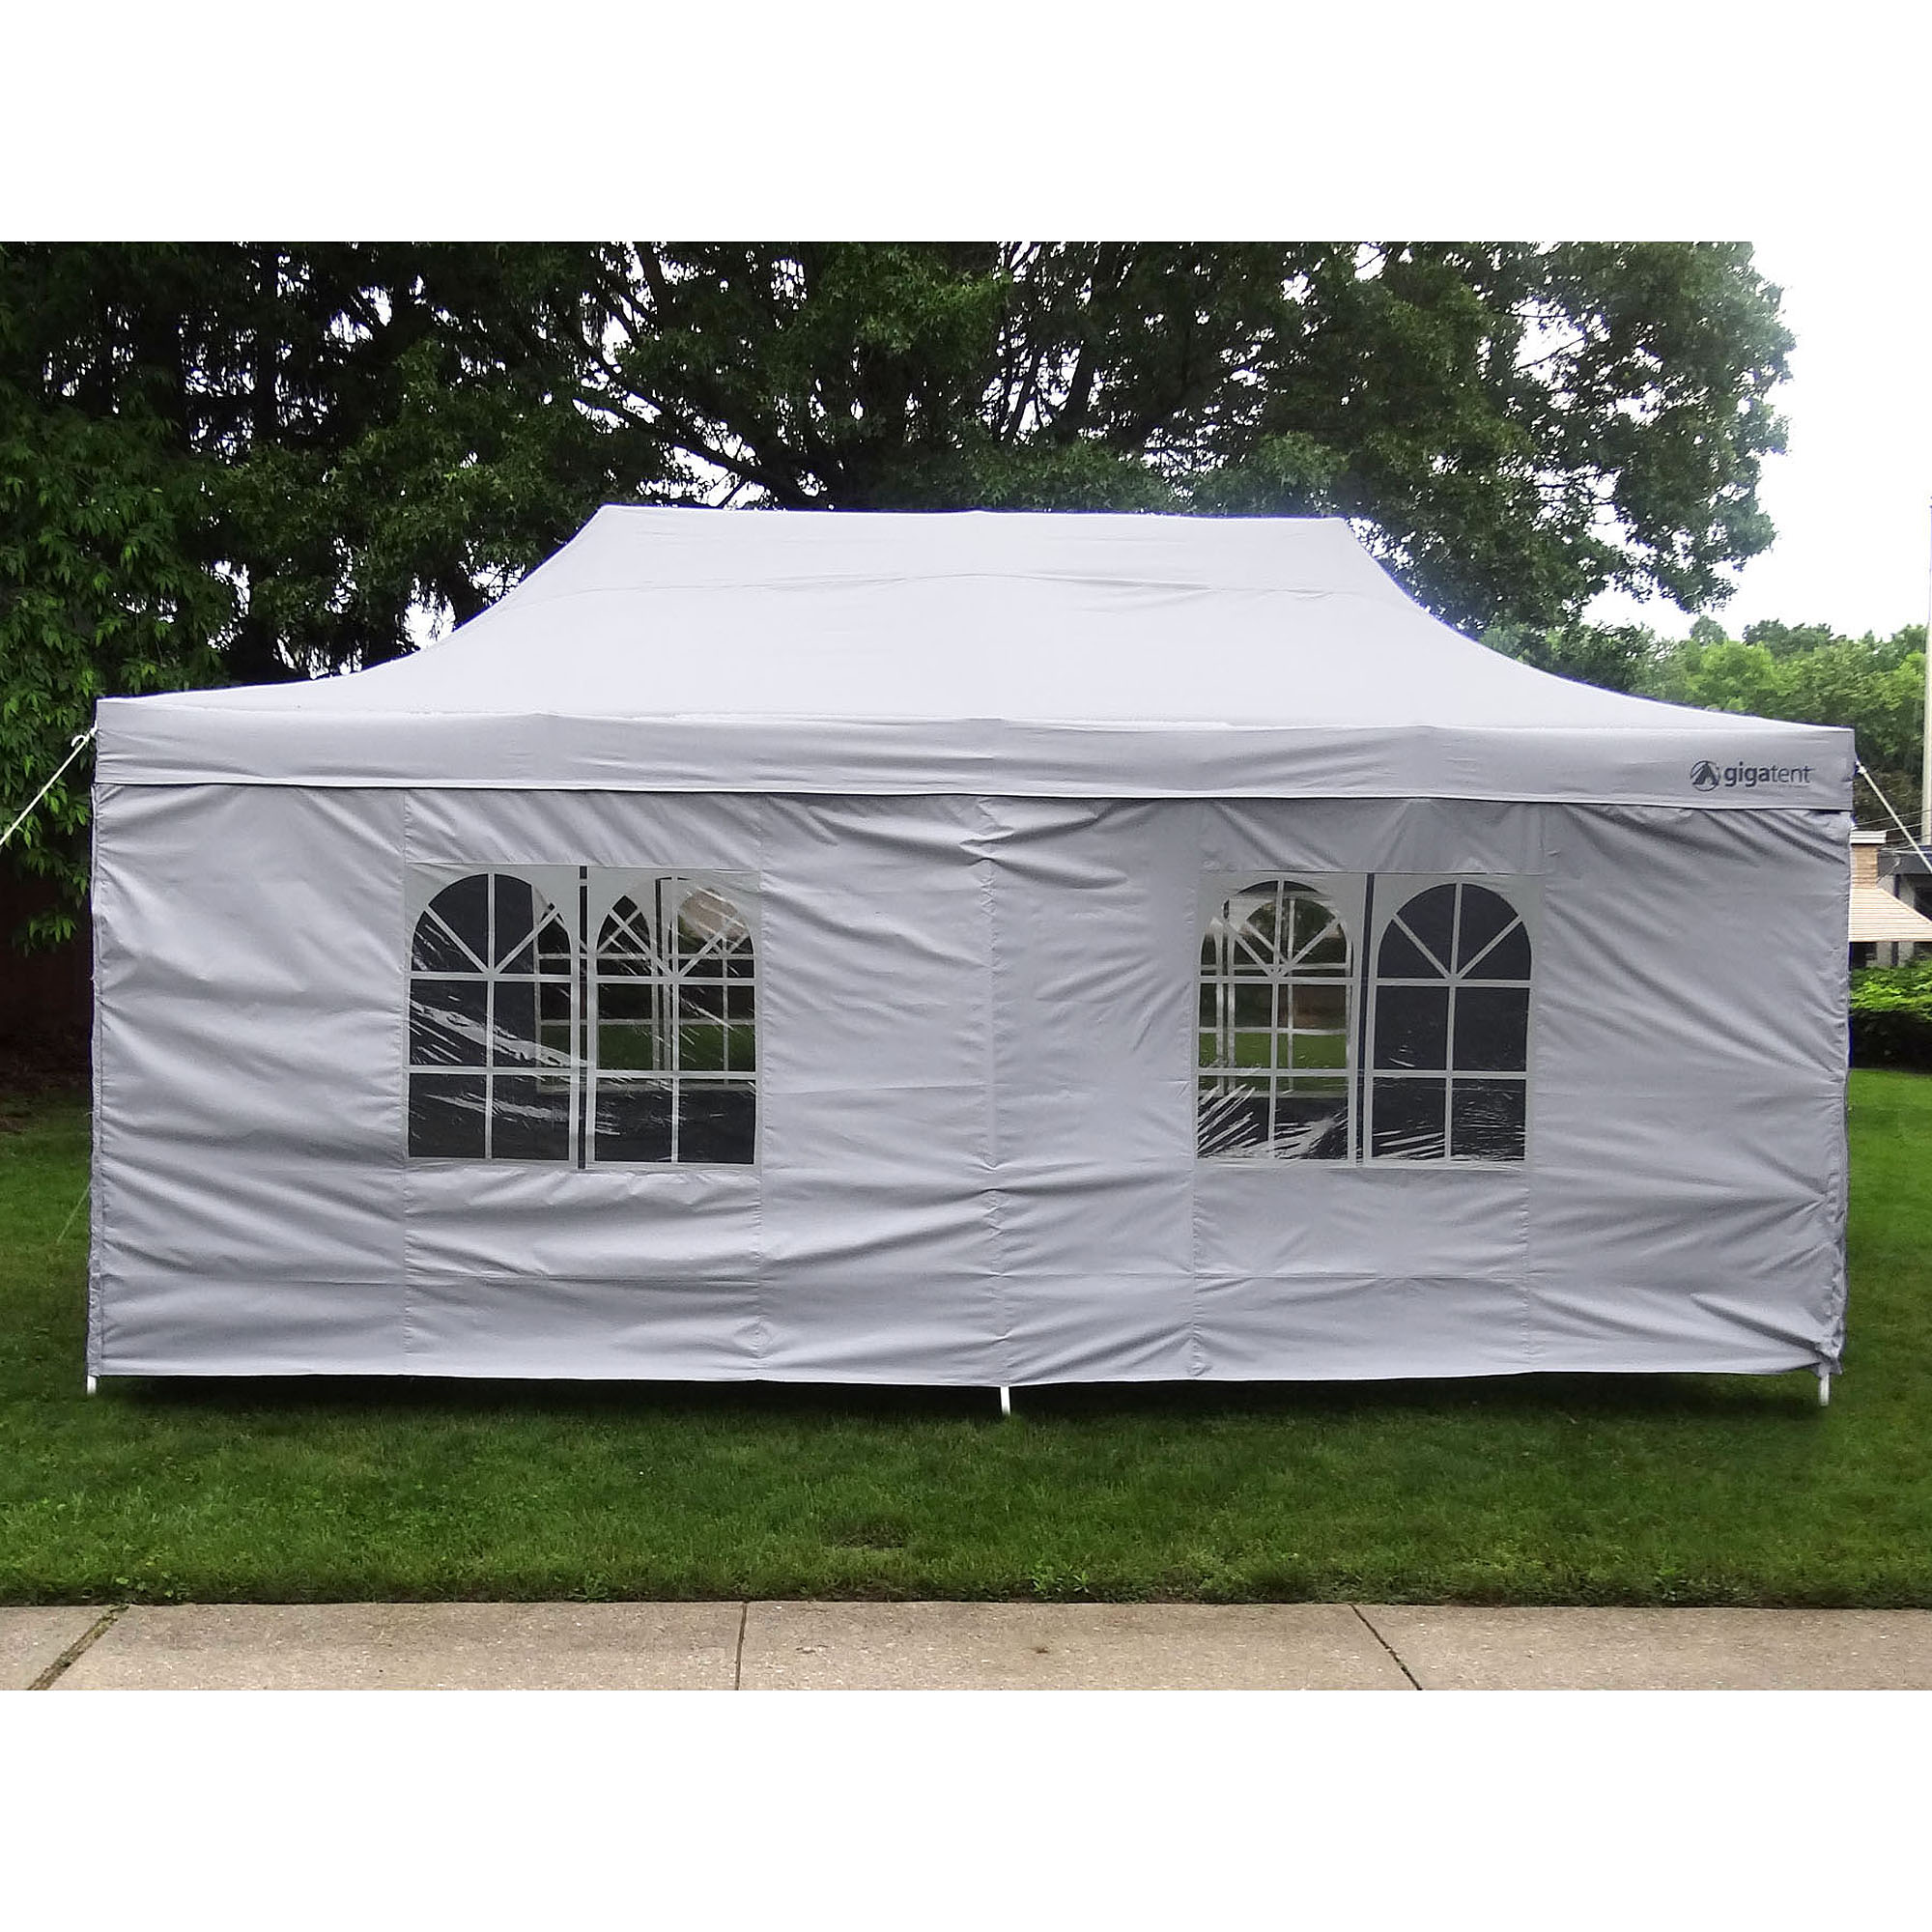 GigaTent The Party Tent Deluxe 10 X 20 Canopy White